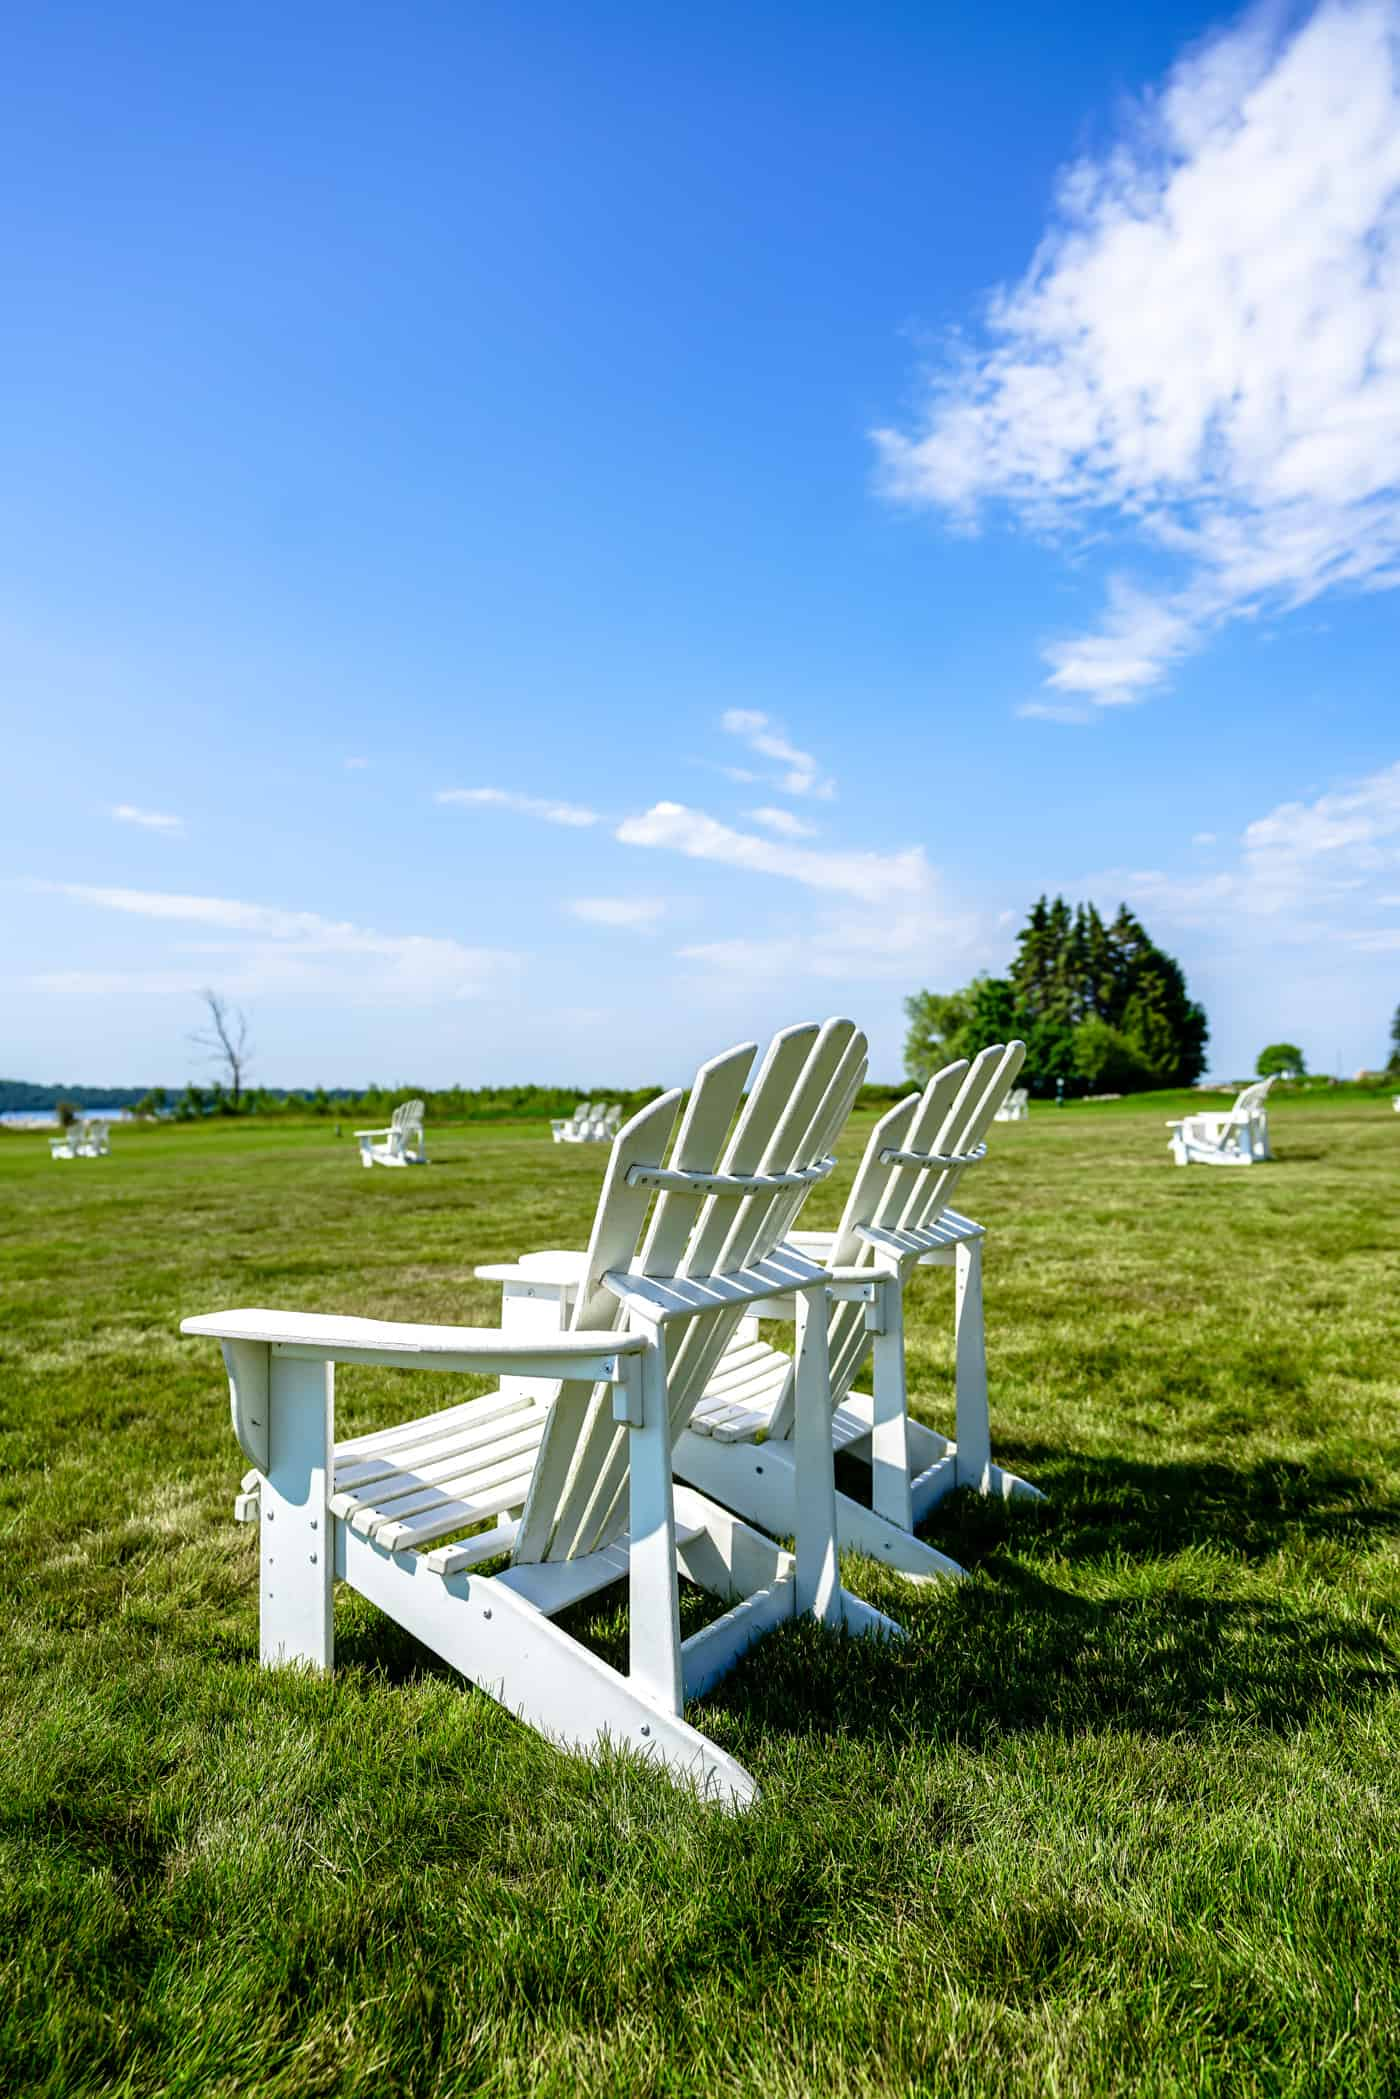 White adirondack charis on the lawn of Mission Point Resort